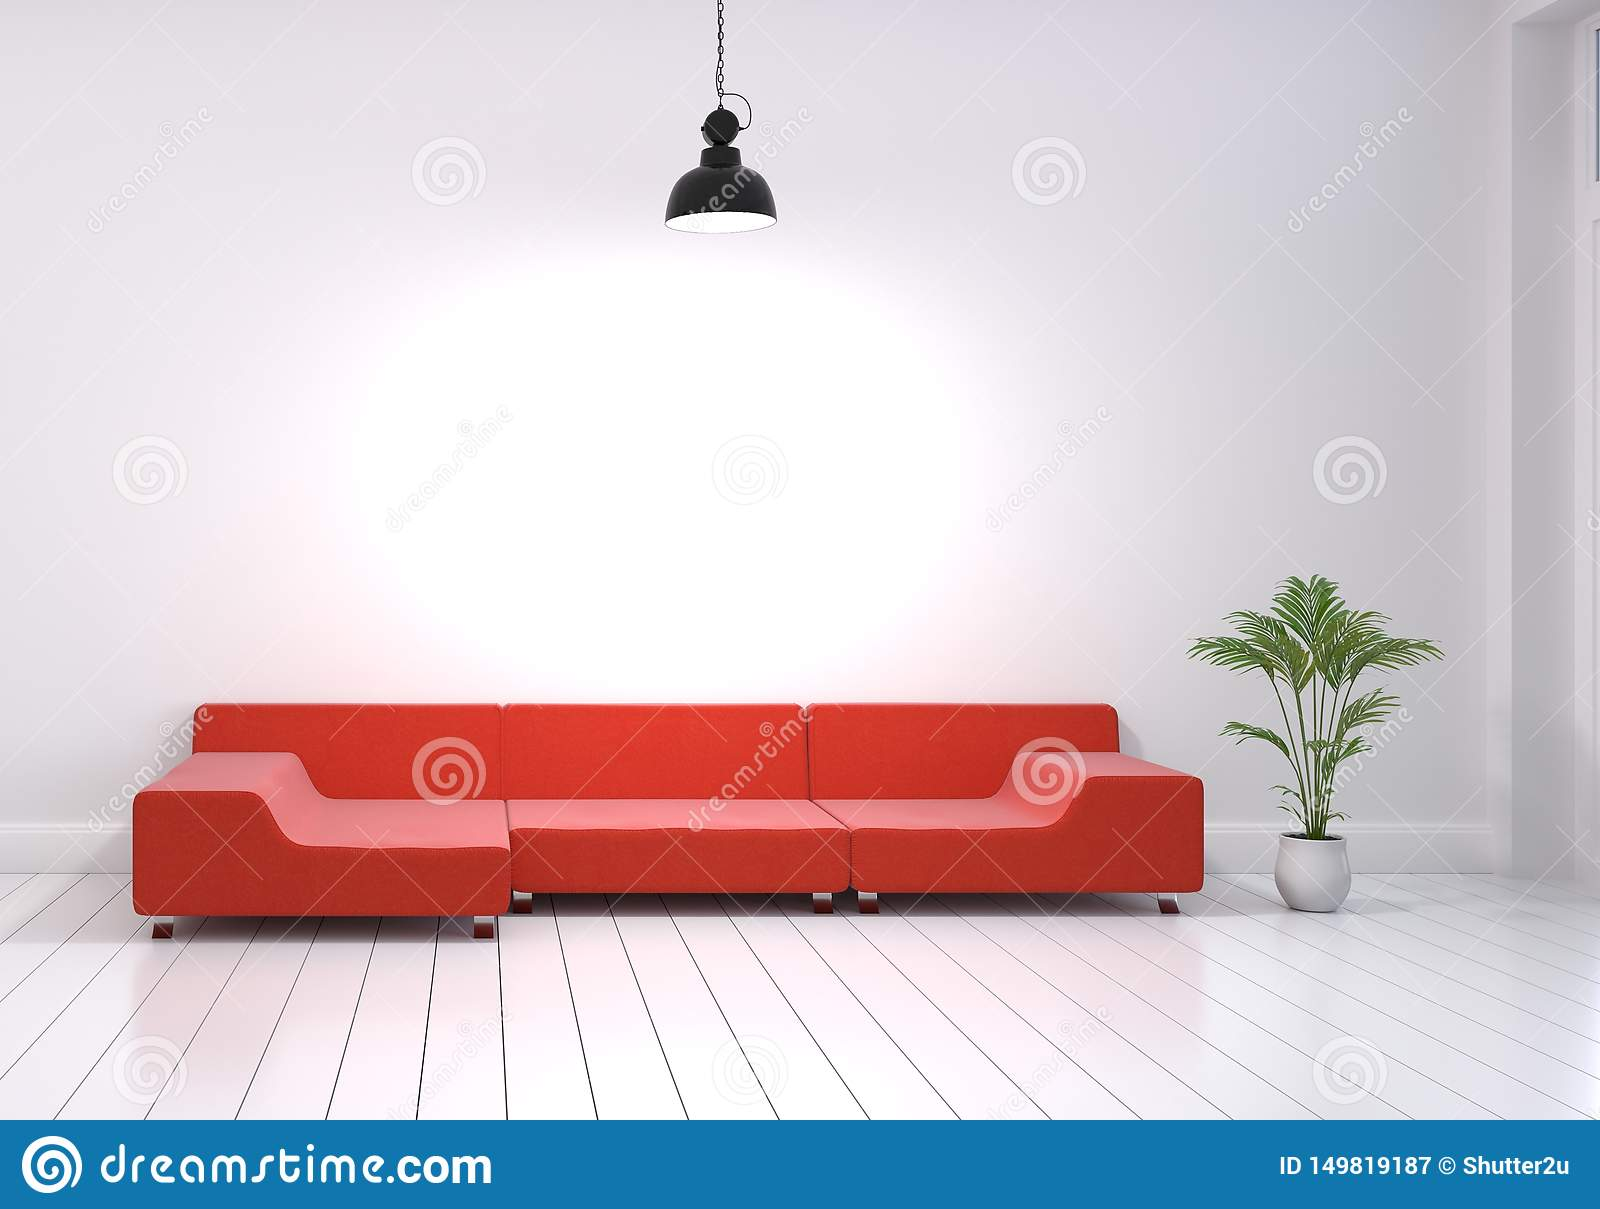 Modern Interior Design Of Living Room With Red Sofa And ...